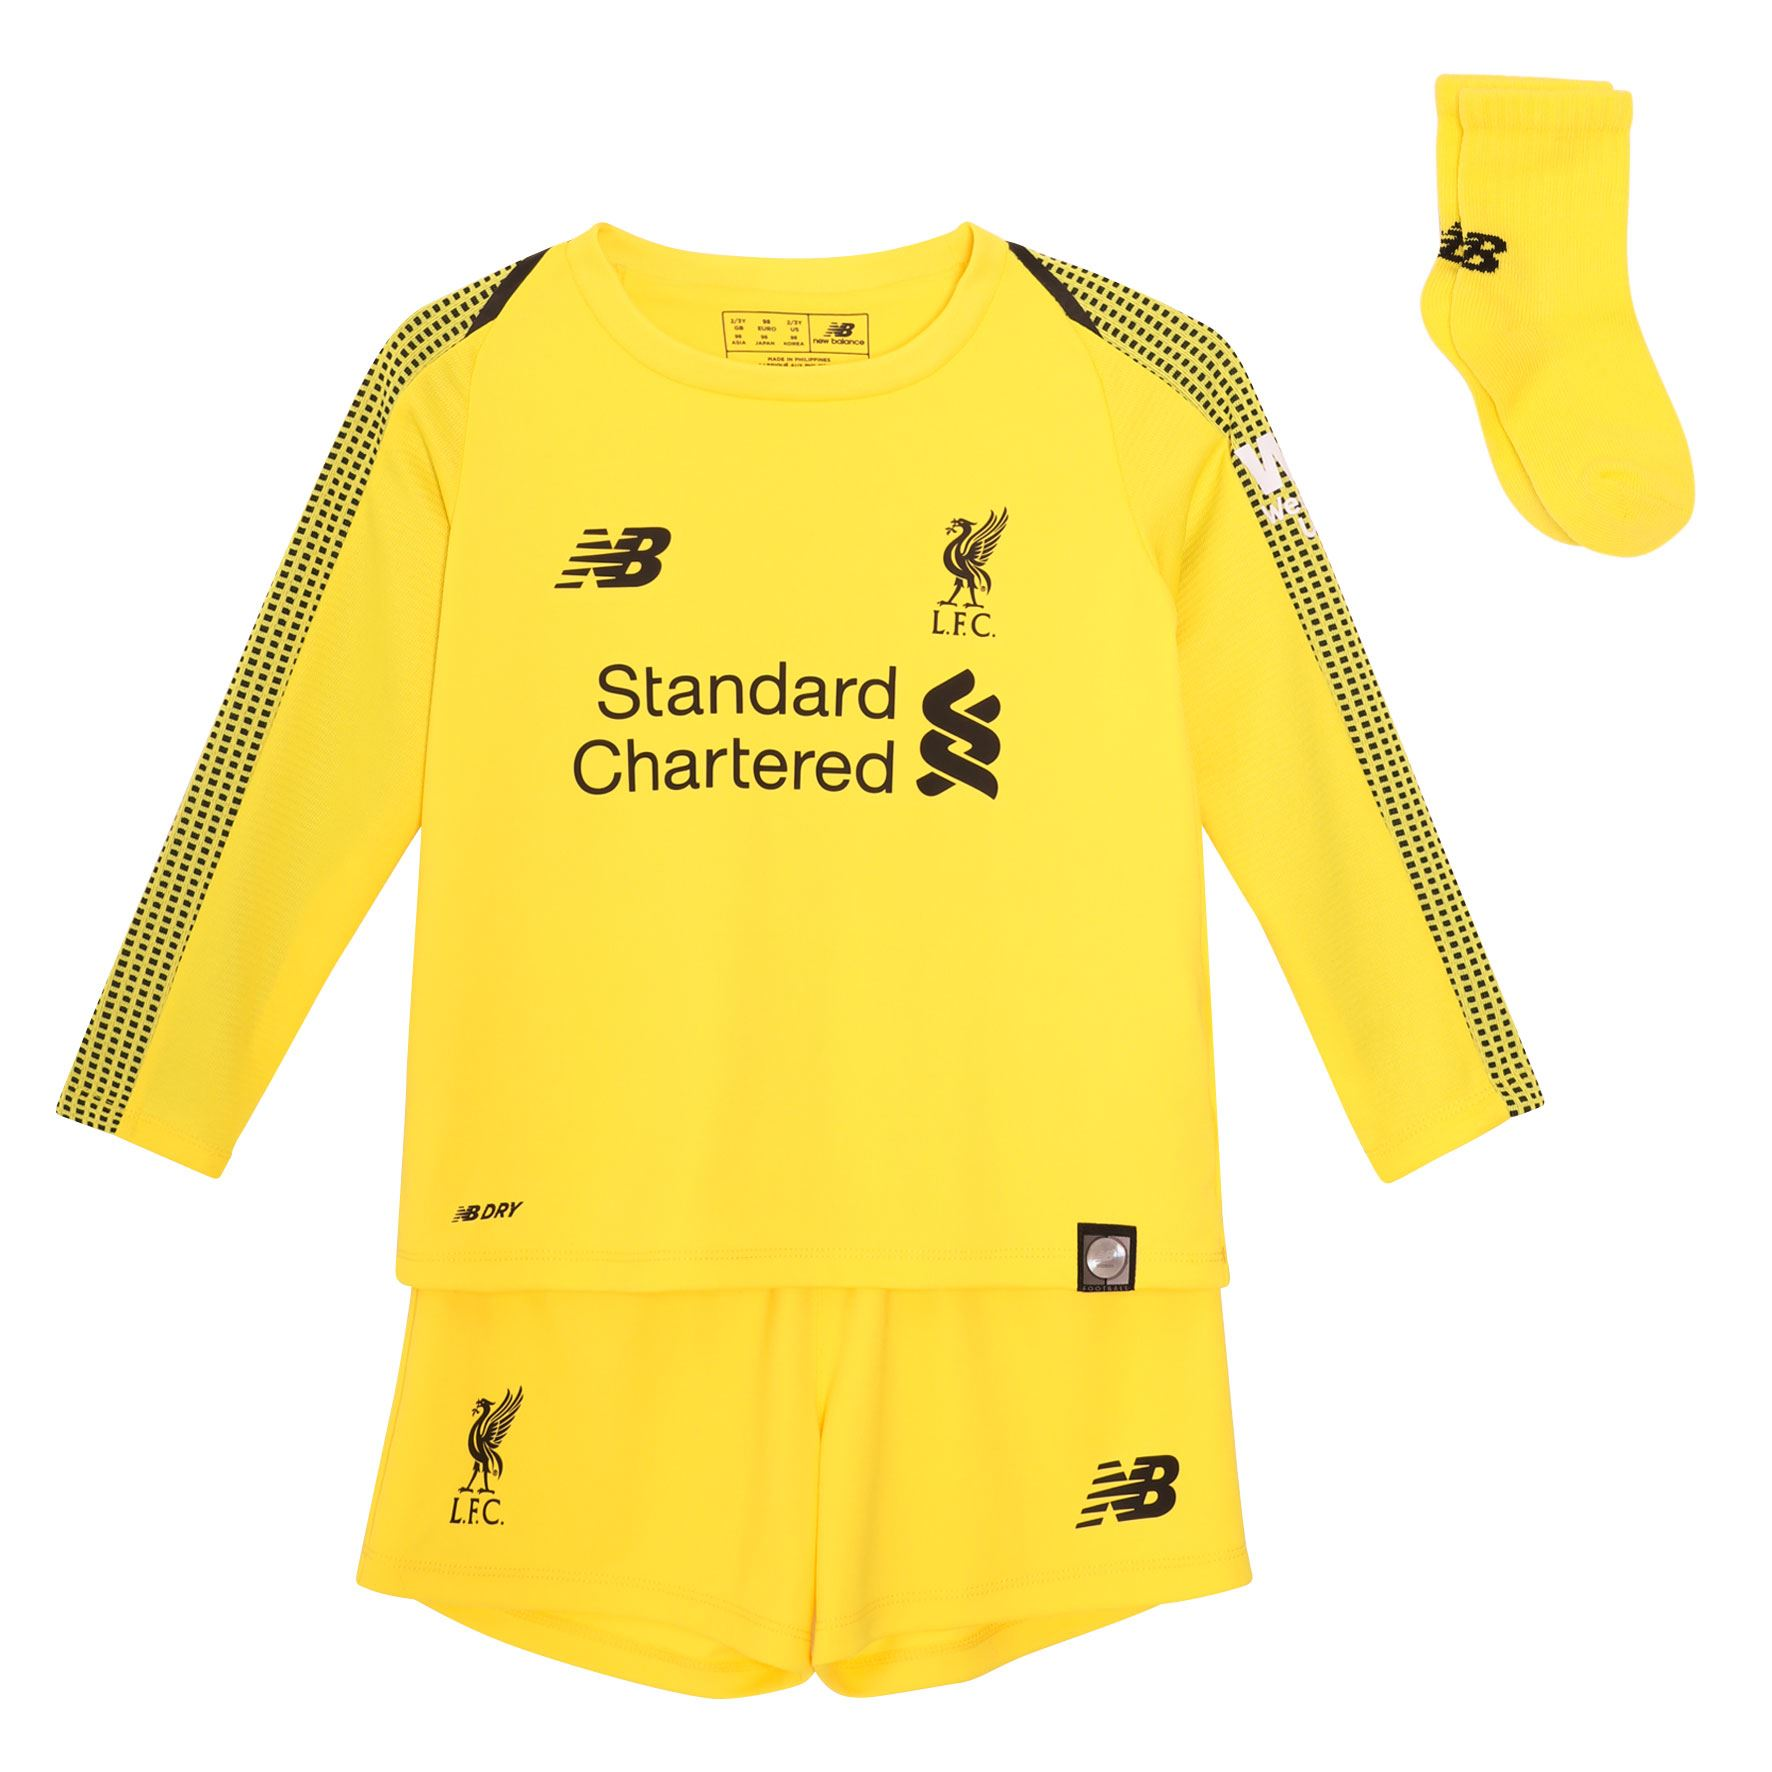 new style 6ff4e ecaf9 Details about Liverpool FC Home Kit Yellow Baby Football Goalkeeper Kit  18/19 LFC Official